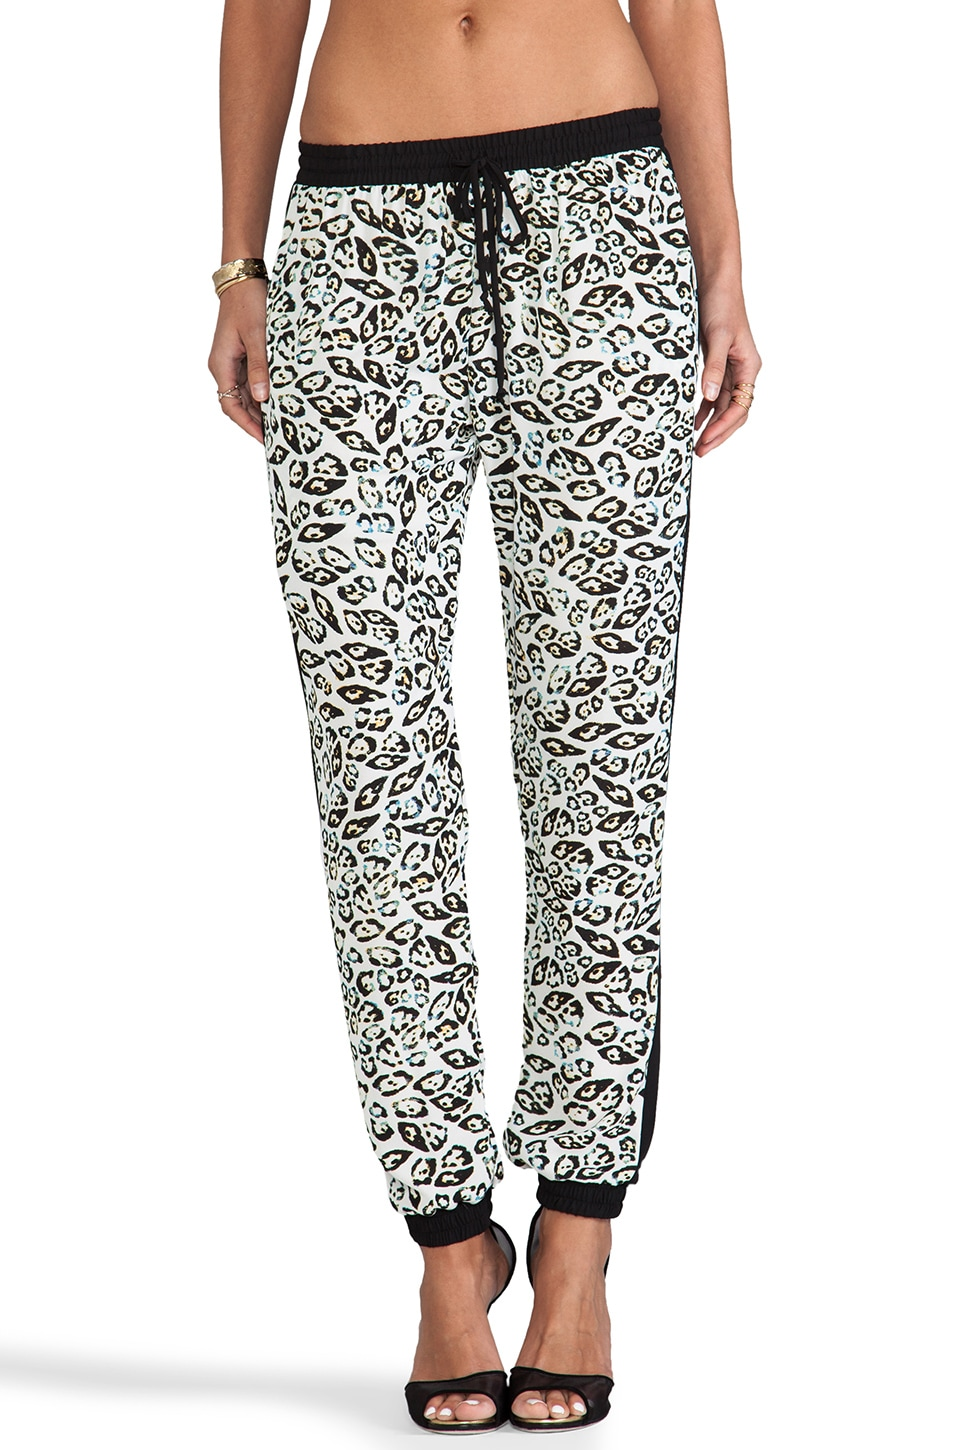 Eight Sixty Eye of the Tiger Pant in Ecru & Black